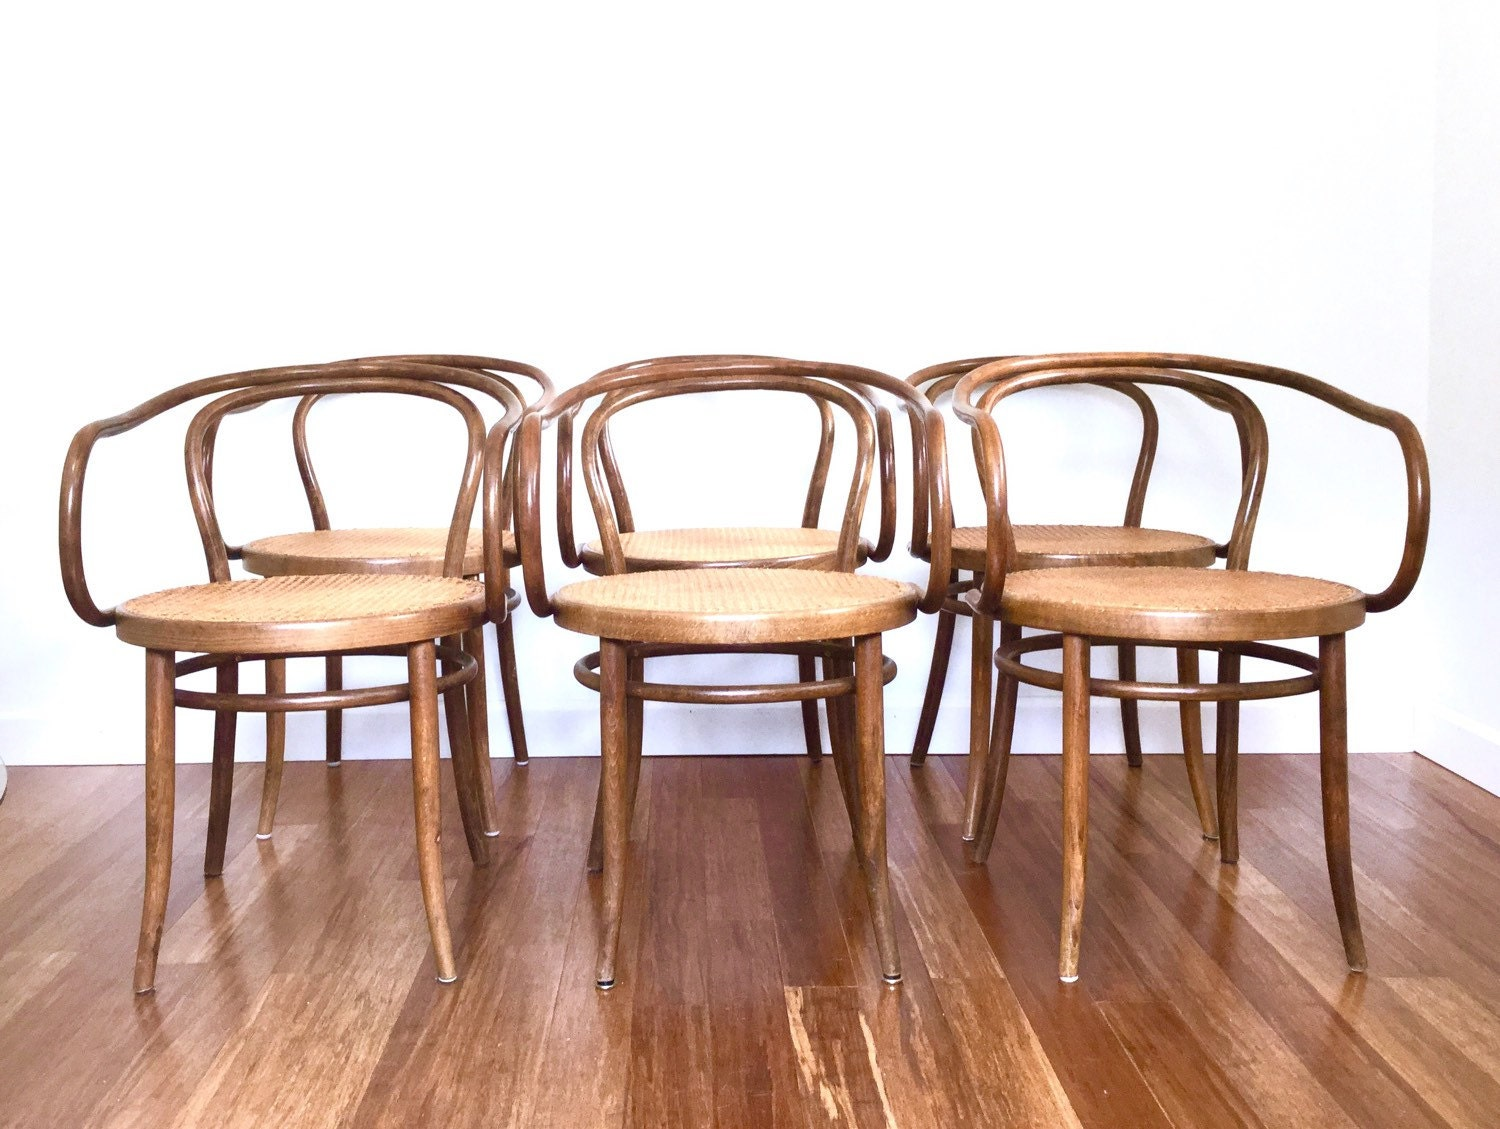 Thonet Stendig Bentwood Chairs Style Armchairs Cane Seats Dining Chairs Mid  Century Vintage Jpg 1500x1129 Bentwood